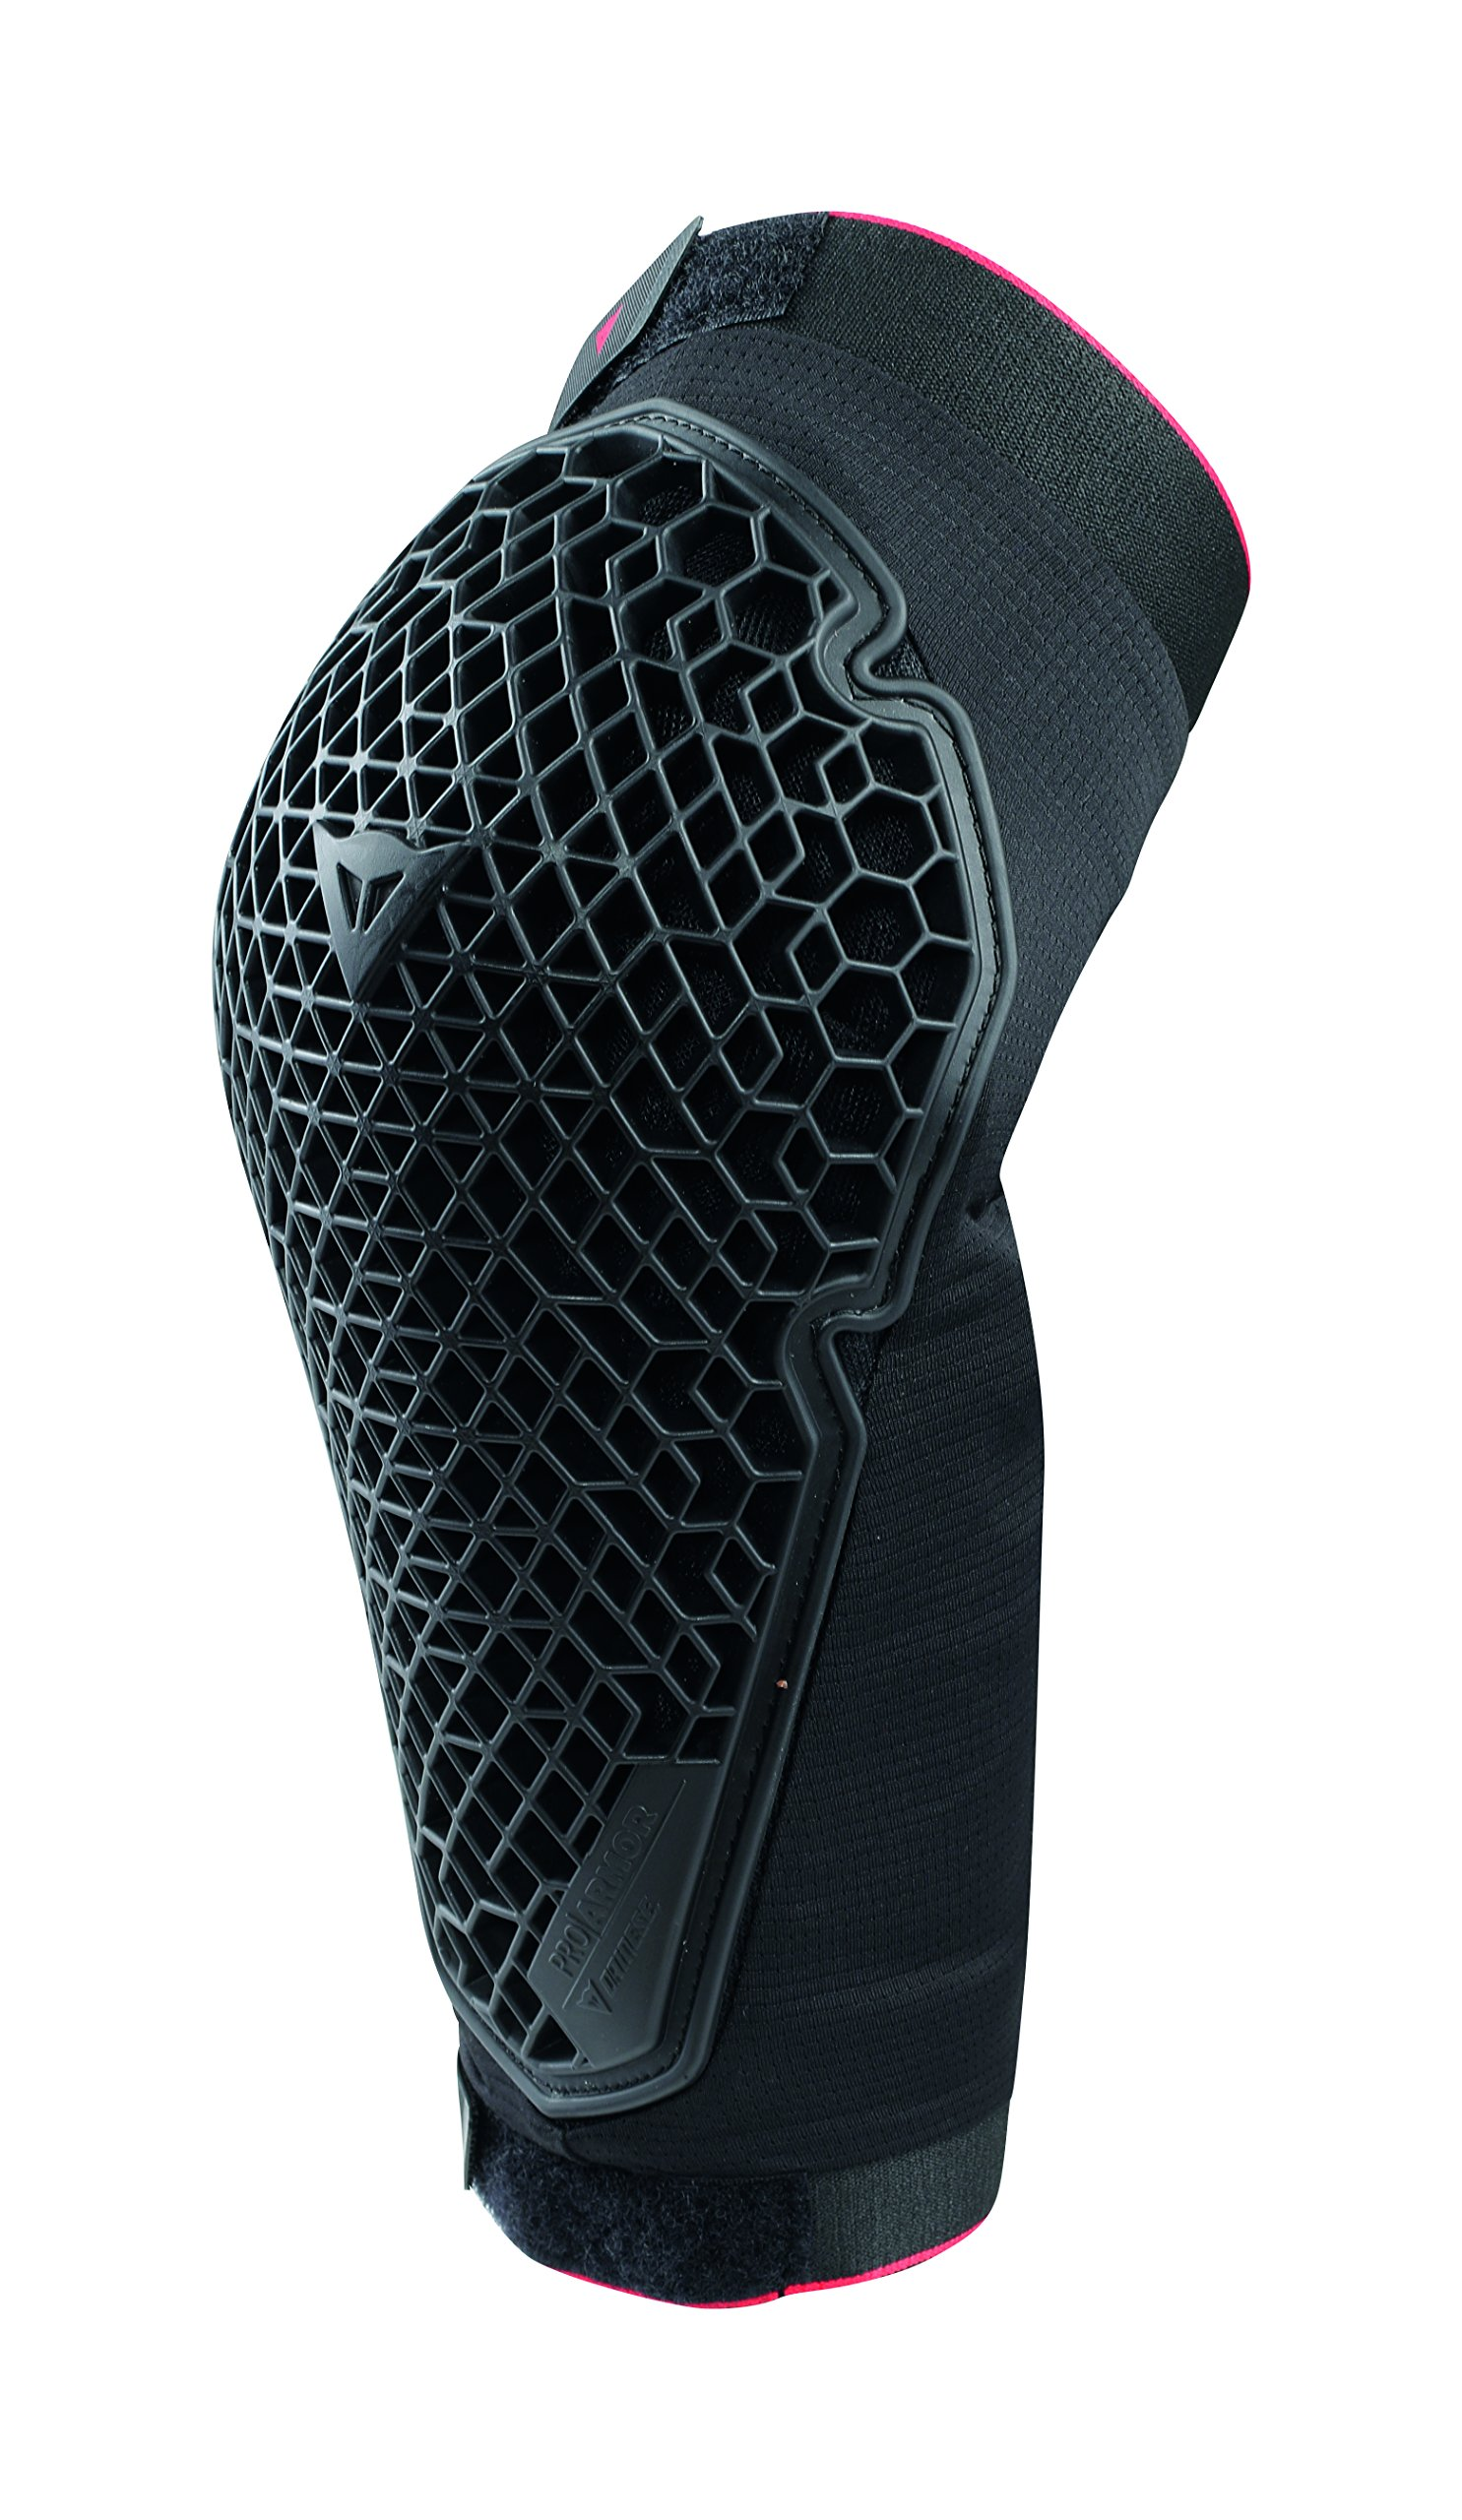 Dainese Men's Trail Skins 2 Elbow Guard, Black, Small